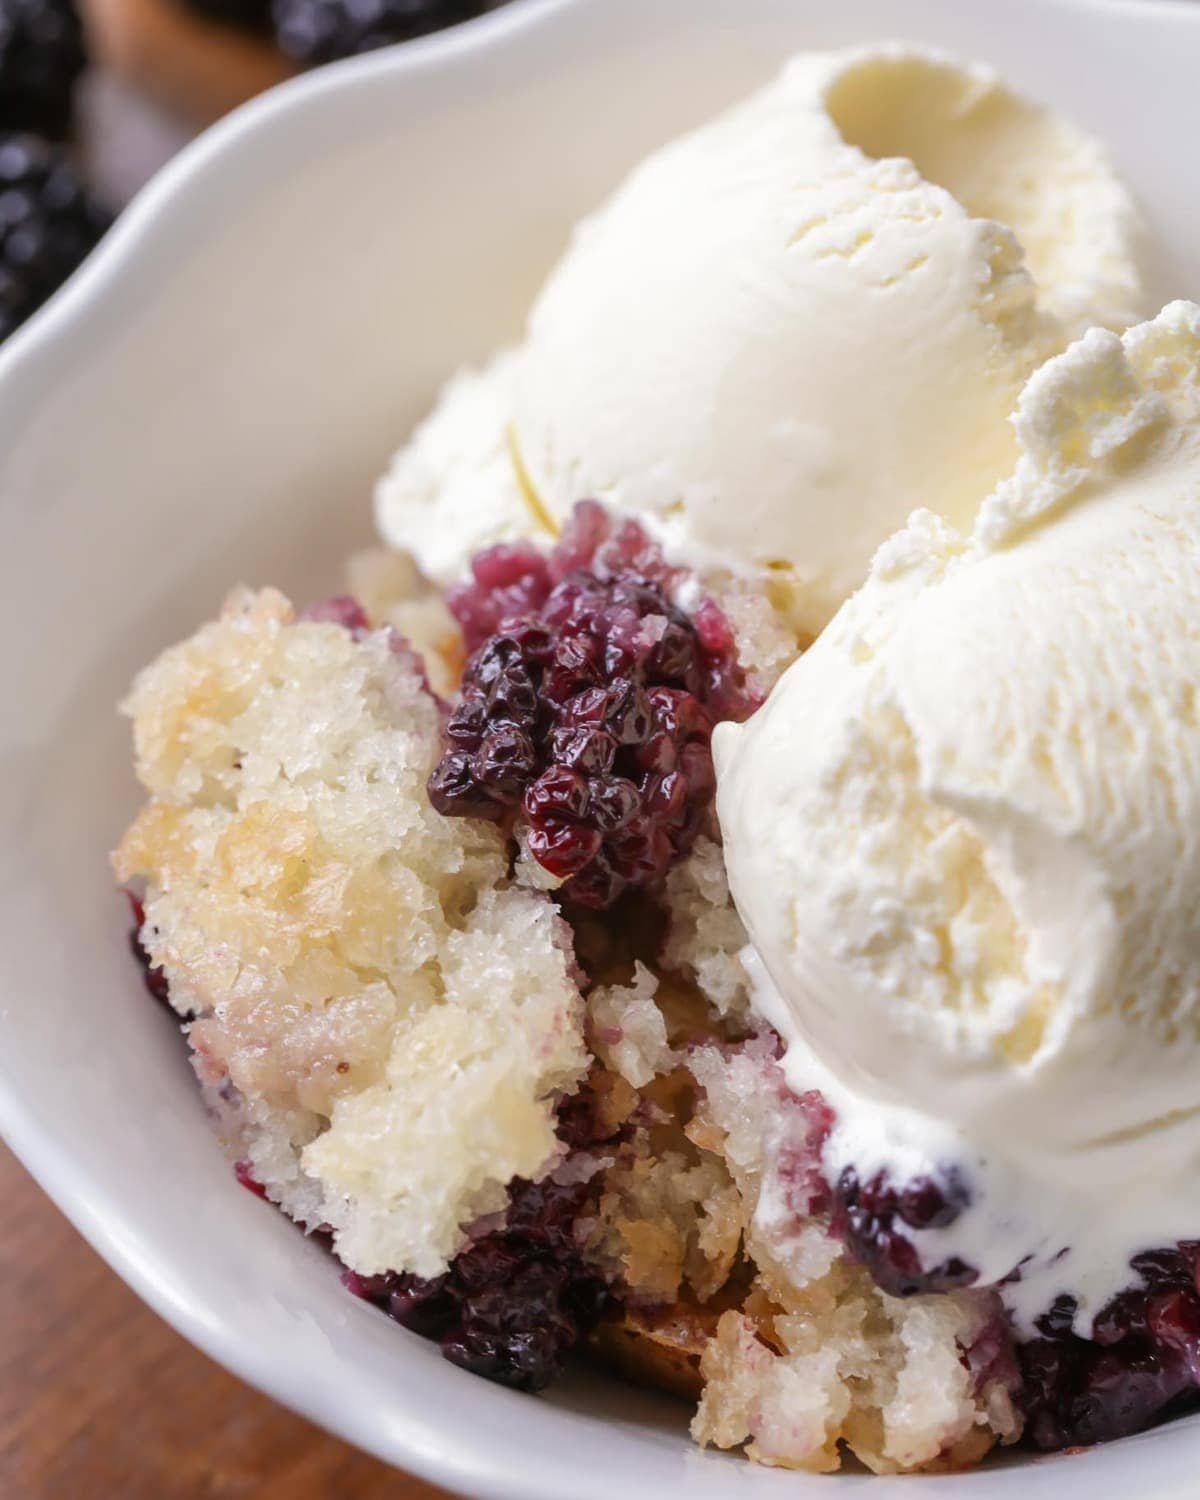 Blackberry cobbler in a bowl with two scoops of vanilla icecream